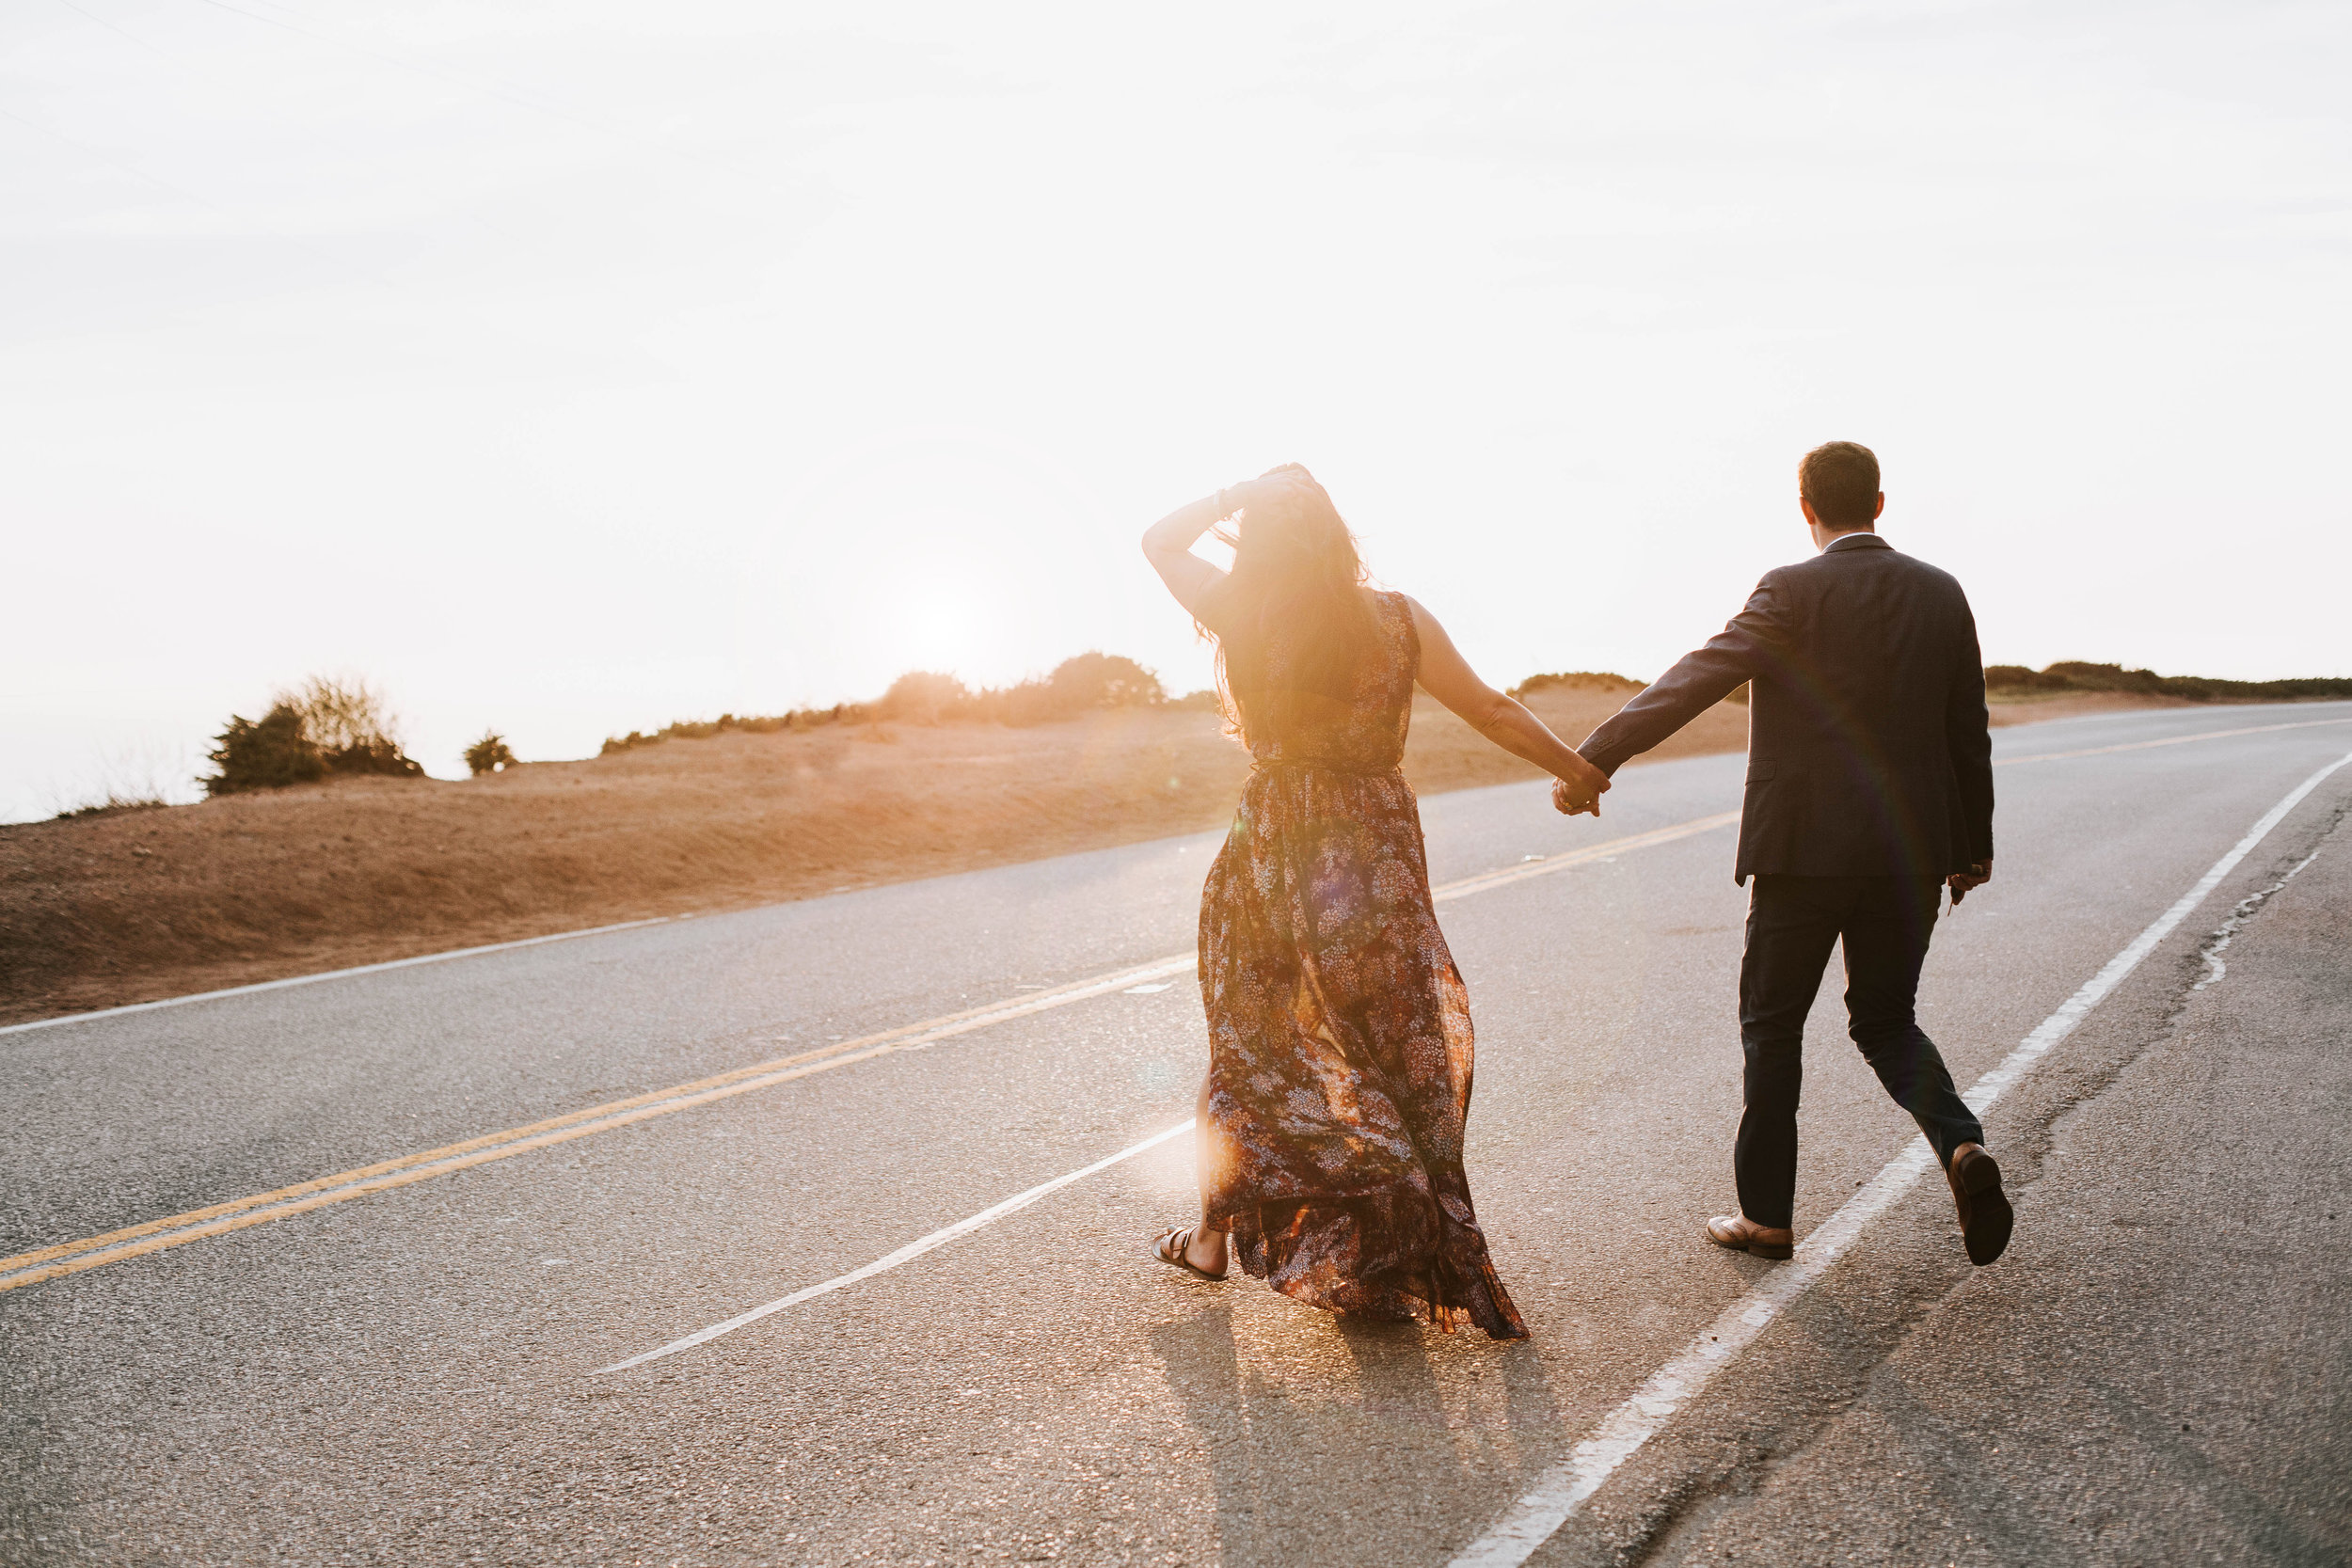 Nicole-Daacke-Photography-Big-Sur-California-Adventure-Golden-Beach-Sunset-authentic-candid-engagement-couples-session-37.jpg